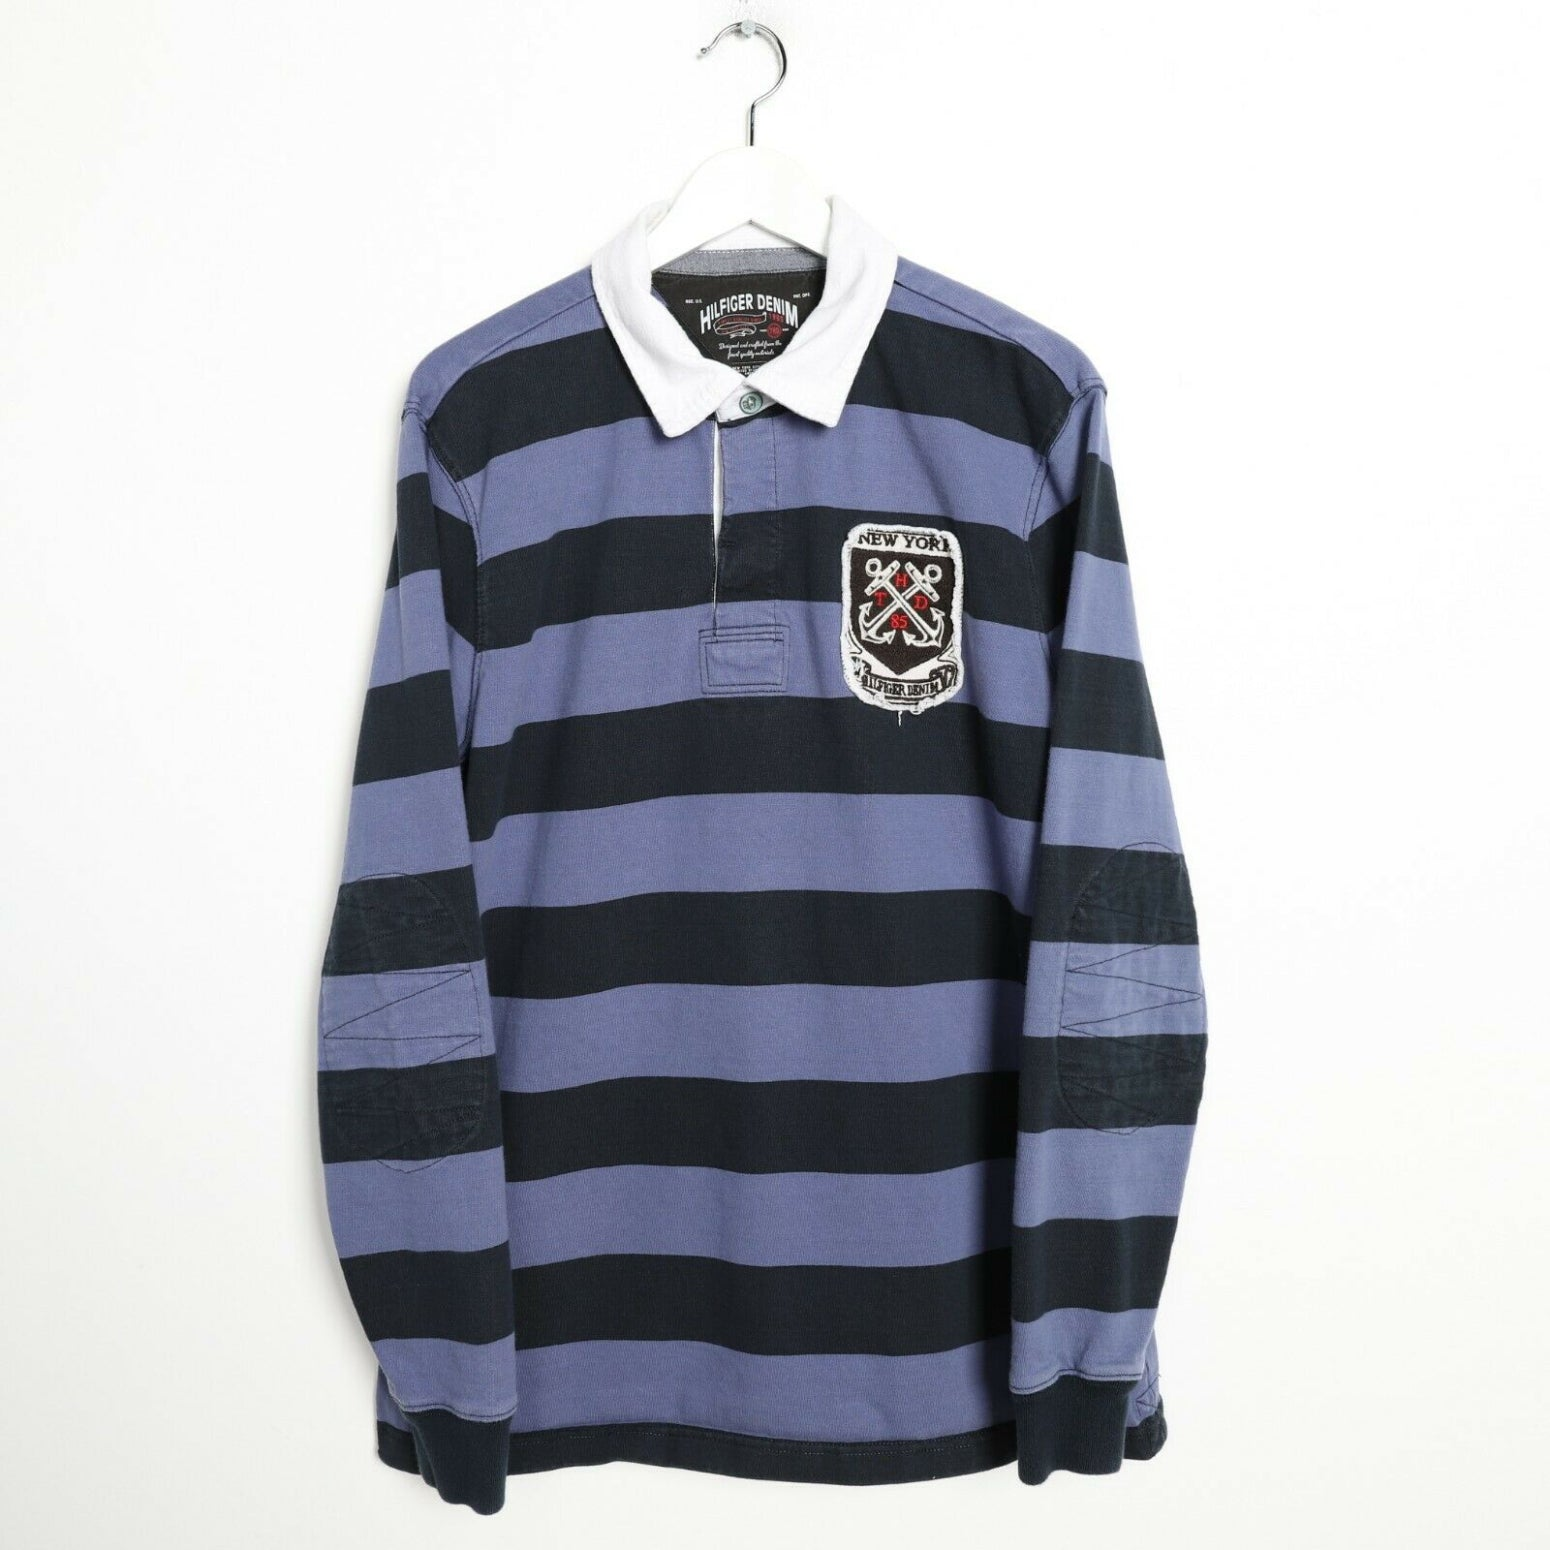 Vintage TOMMY HILFIGER Denim Striped Rugby Polo Shirt Top Navy Blue XL